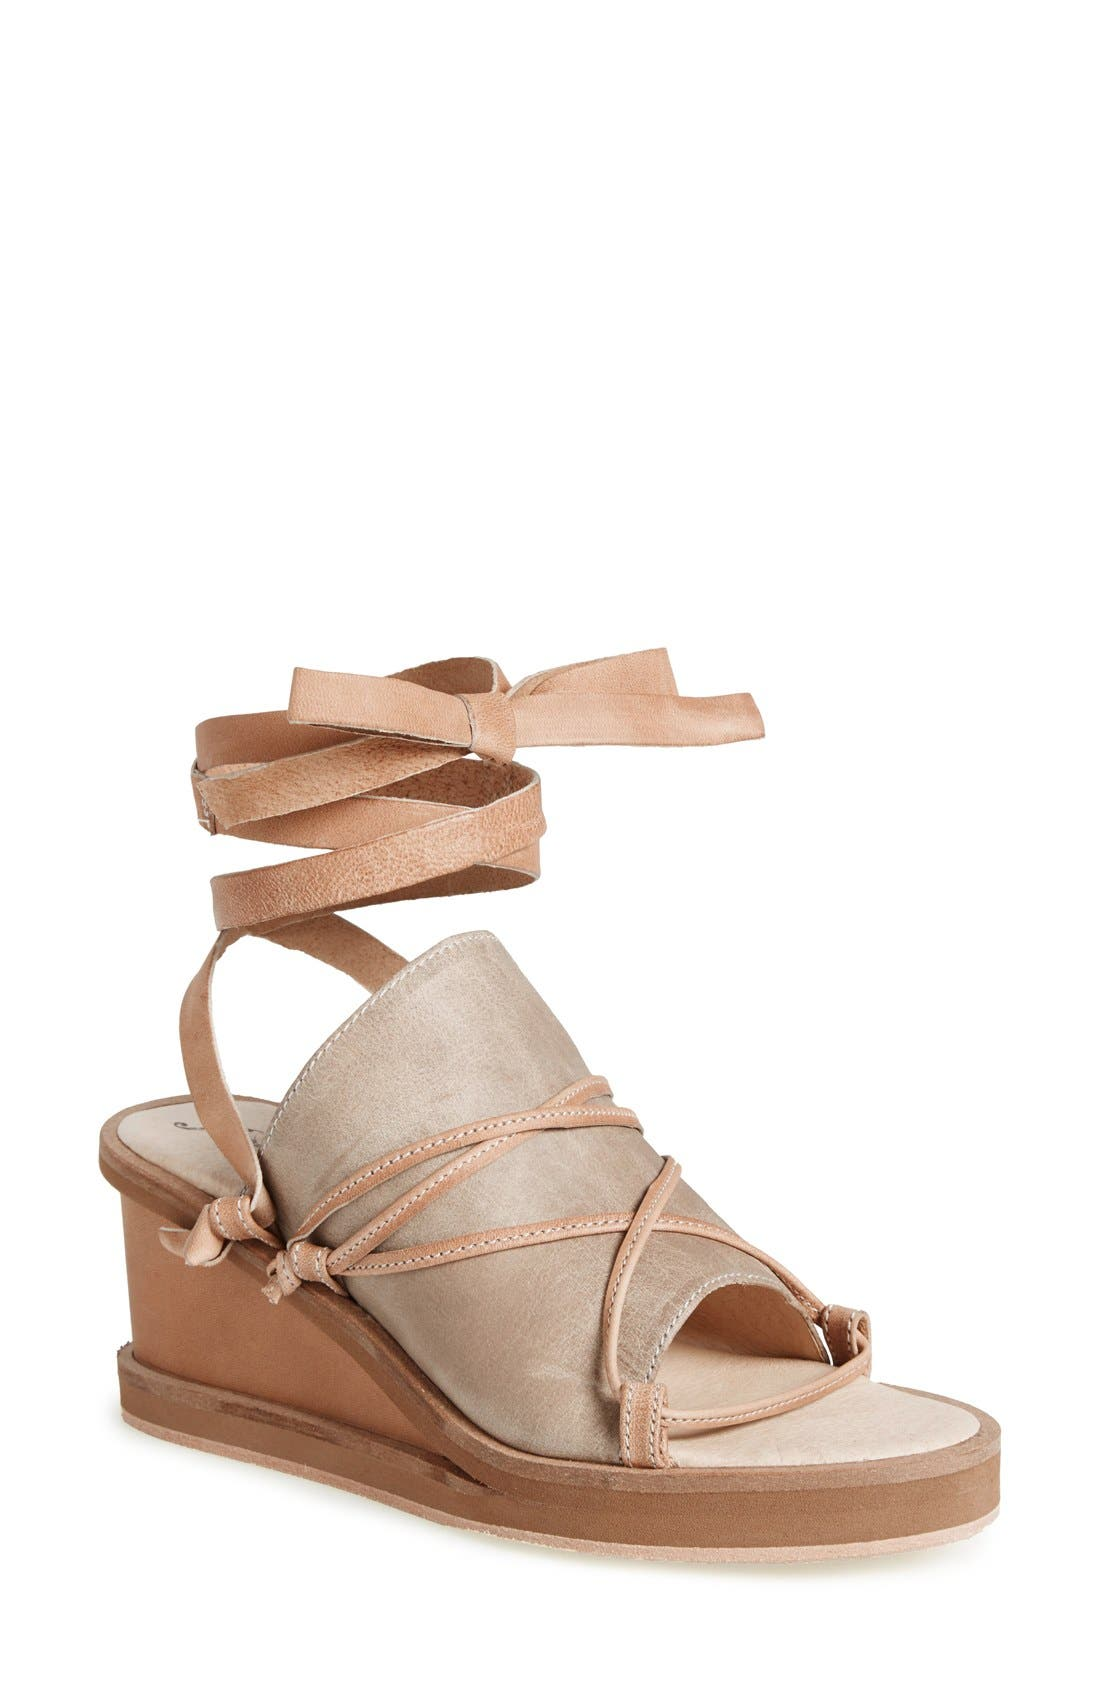 Main Image - Free People 'Bowery' Ankle Tie Wedge Sandal